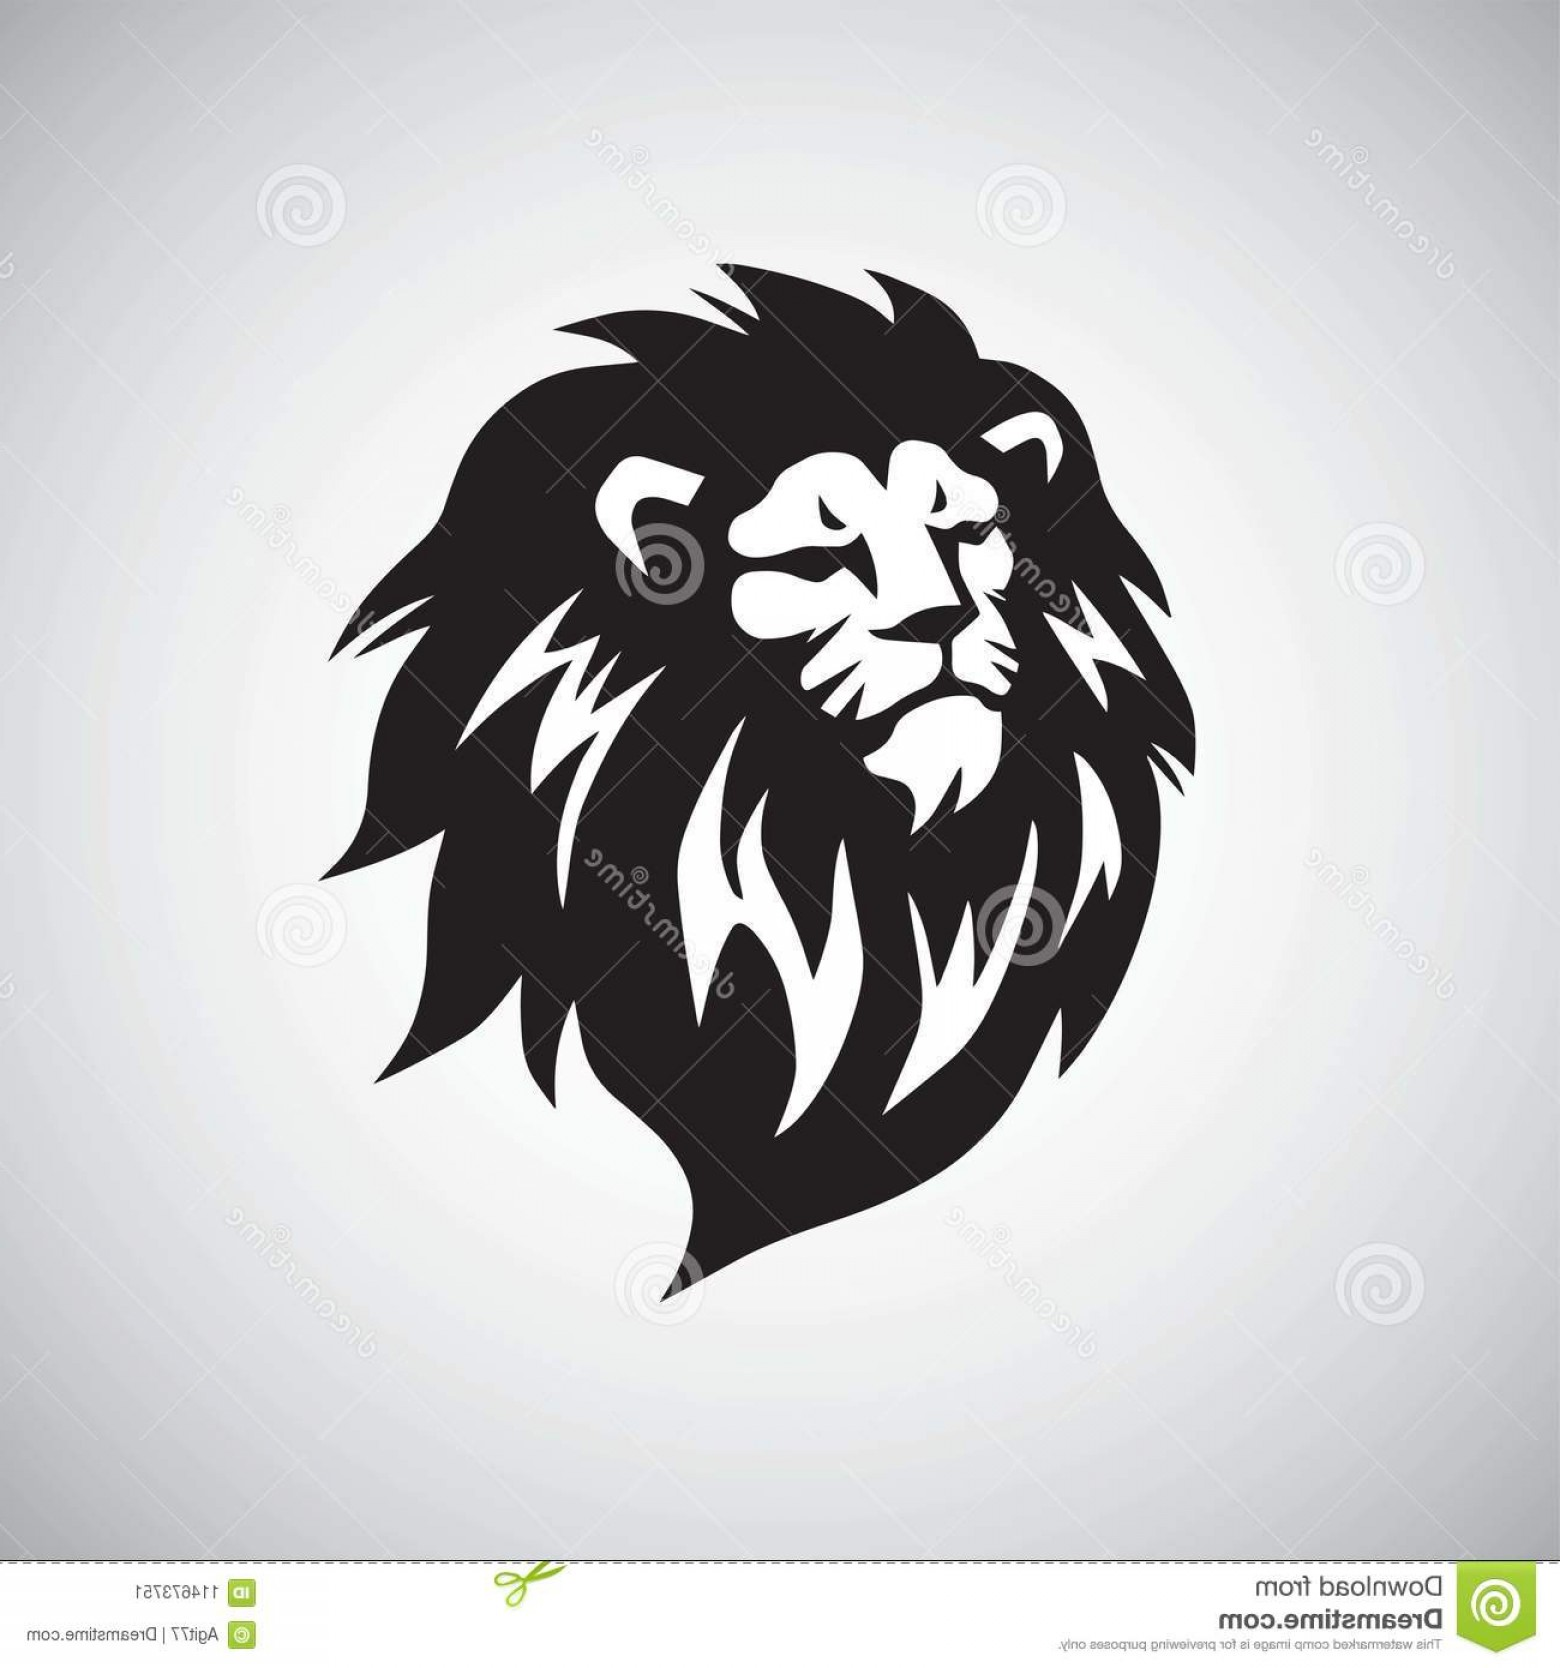 Cool Logo Icon Vector: Lion Head Cool Logo Design Vector Illustration Mascot Icon Image